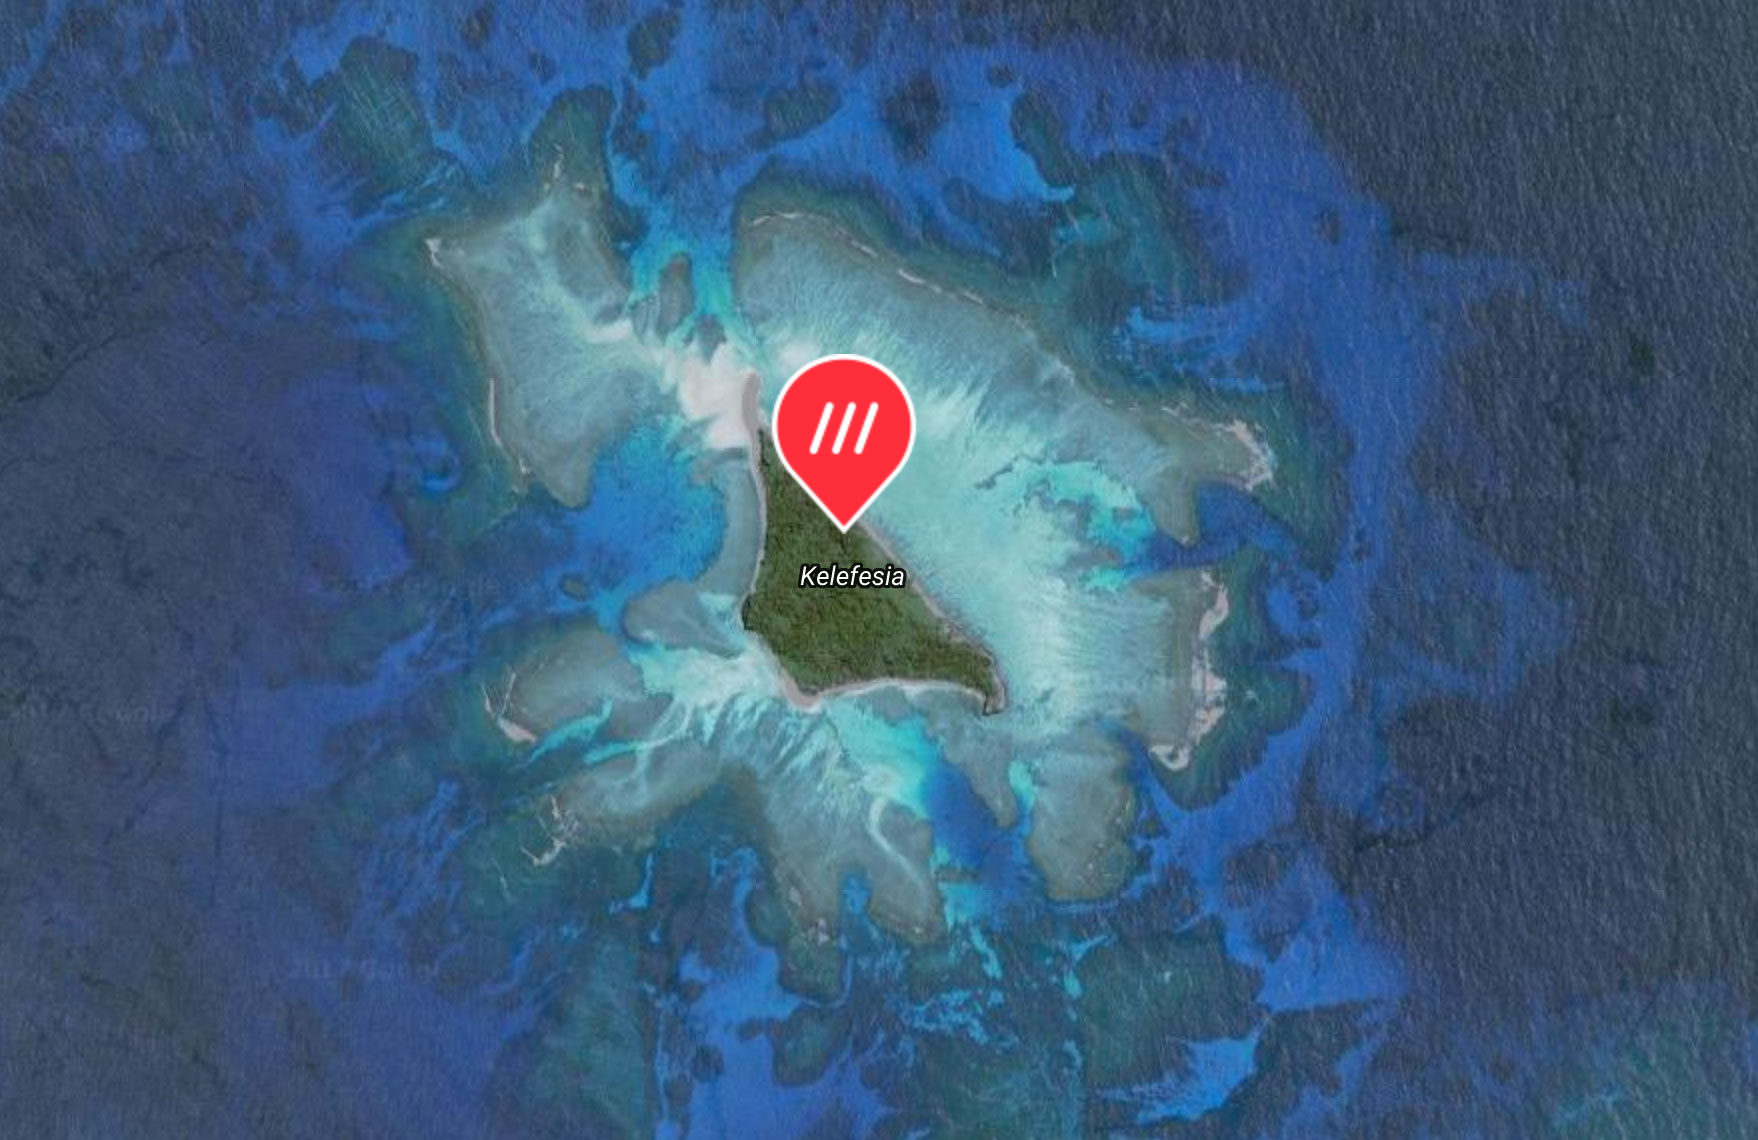 The tiny Tongan island of Kelefesia has no roads, but now it has addresses.